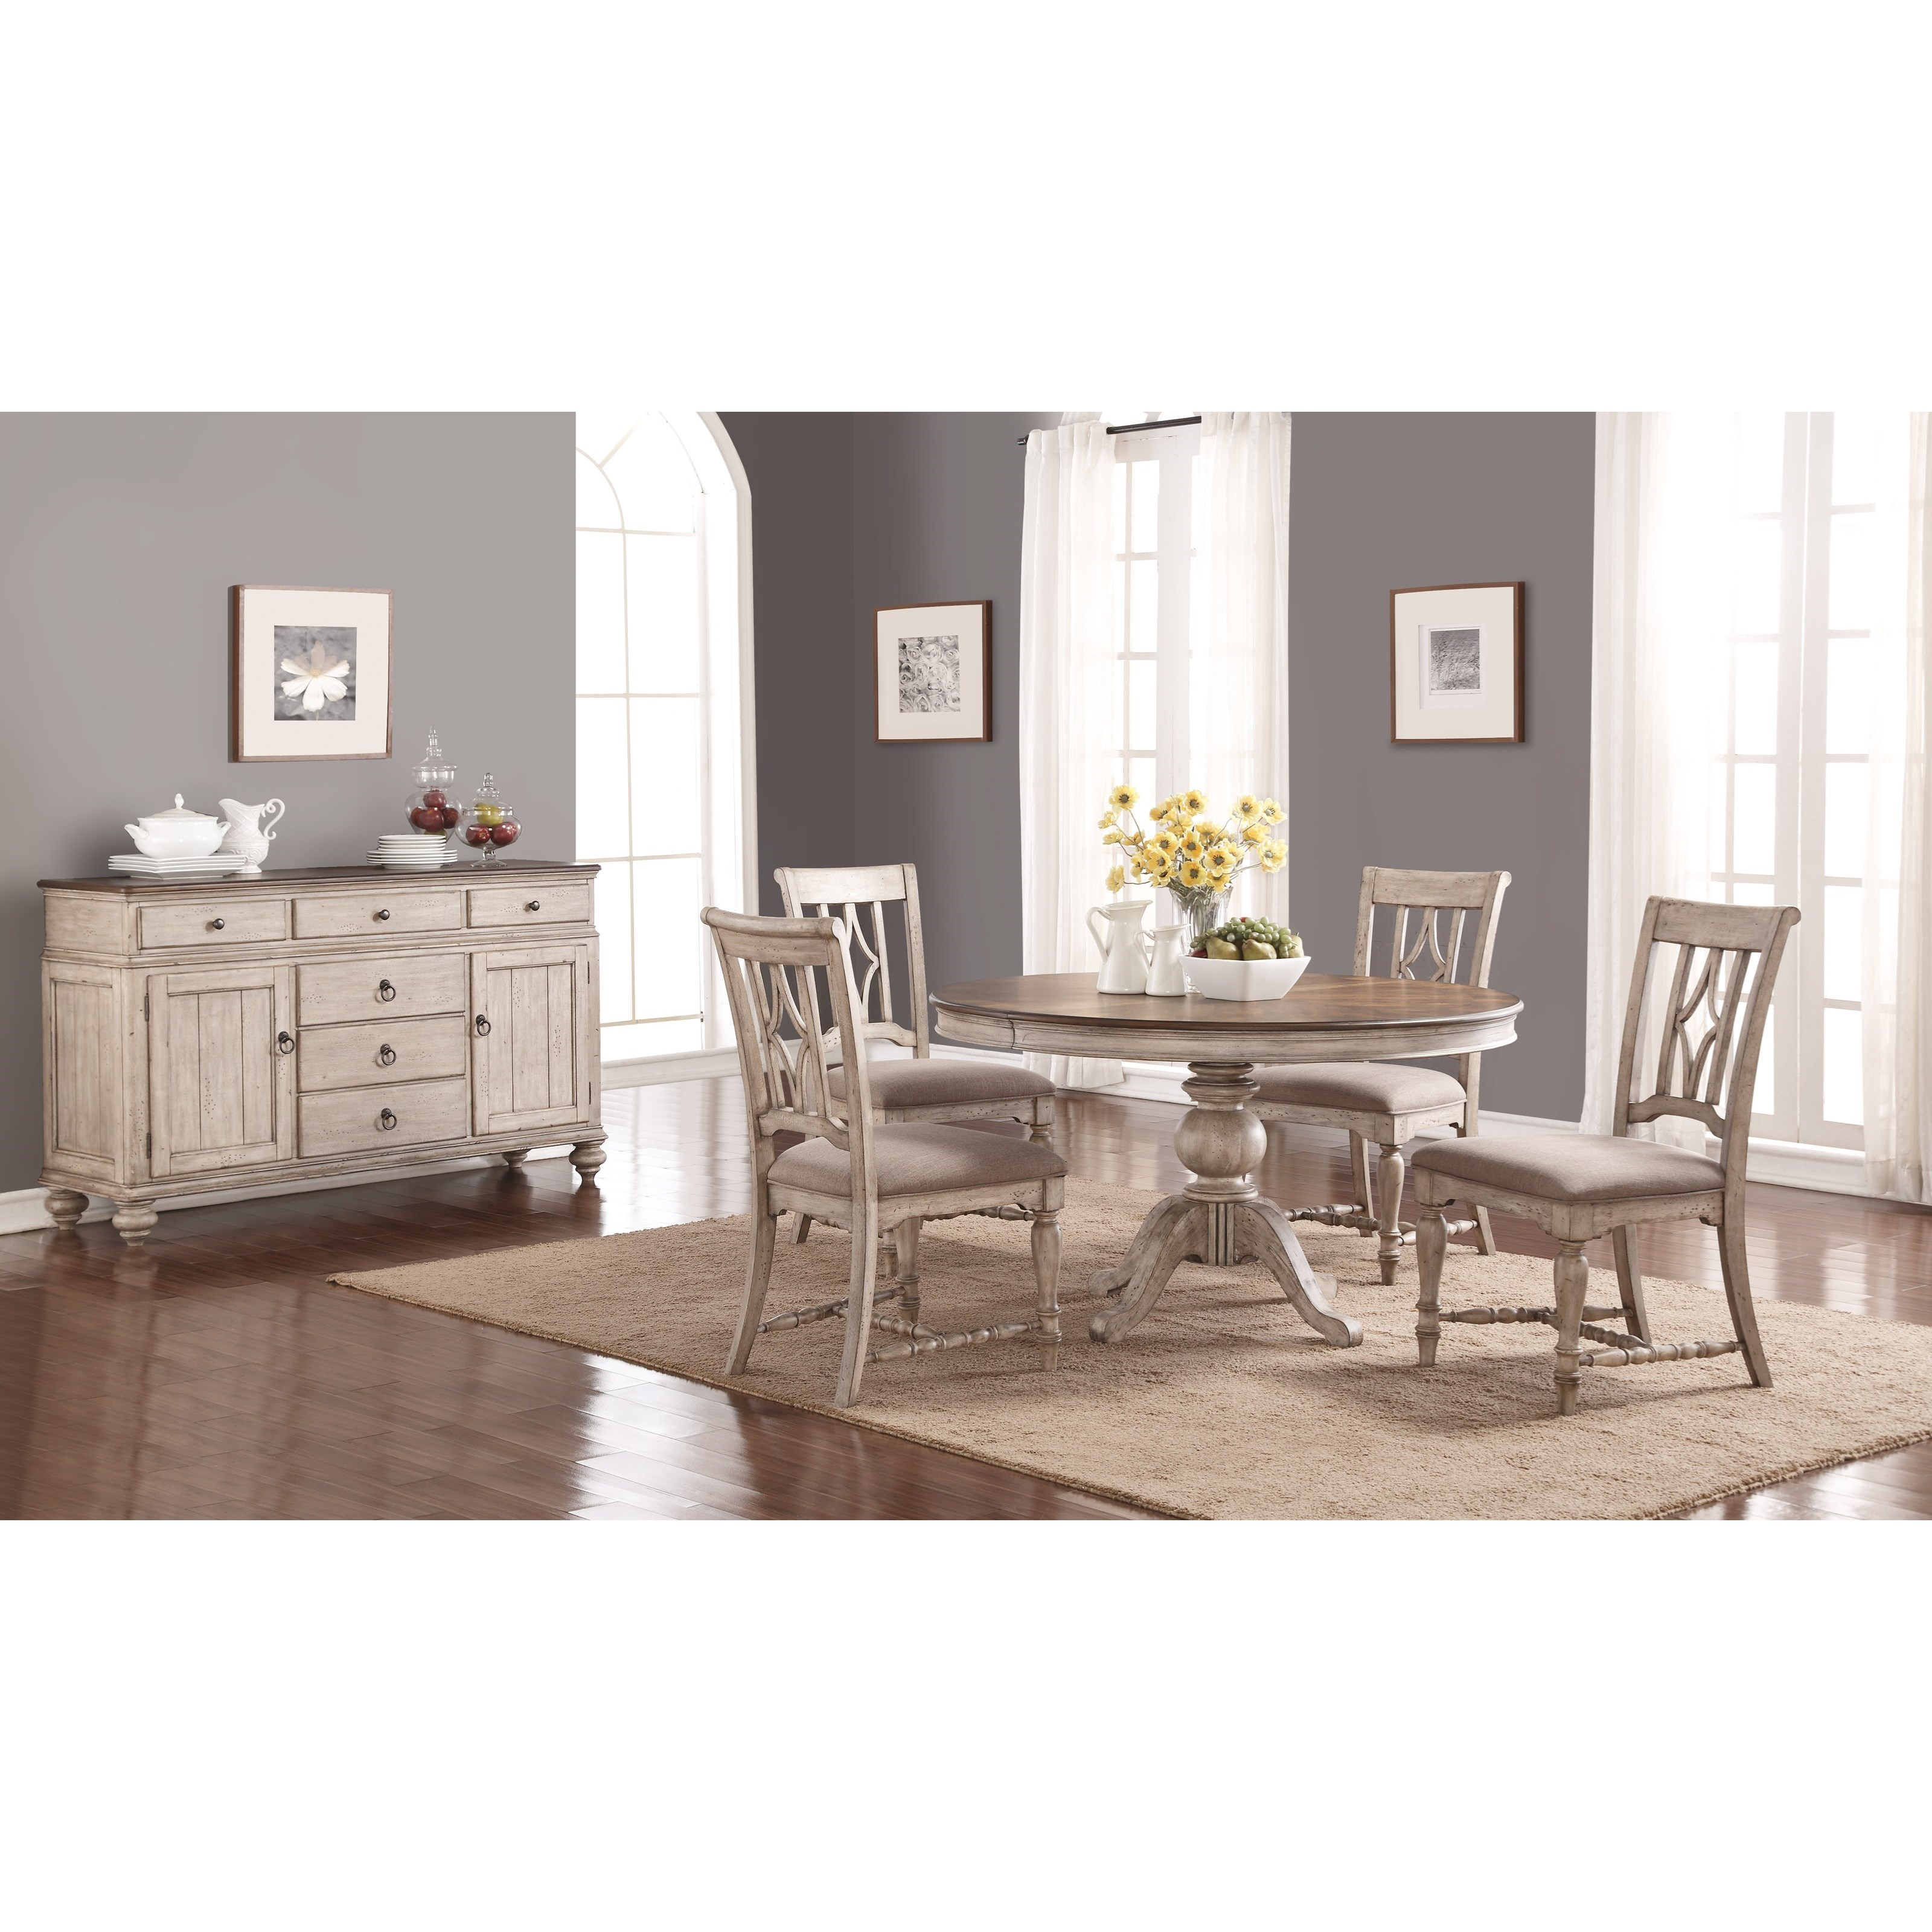 Flexsteel Wynwood Collection Plymouth Cottage Dining Room Group With Pedestal Table Sheely 39 S